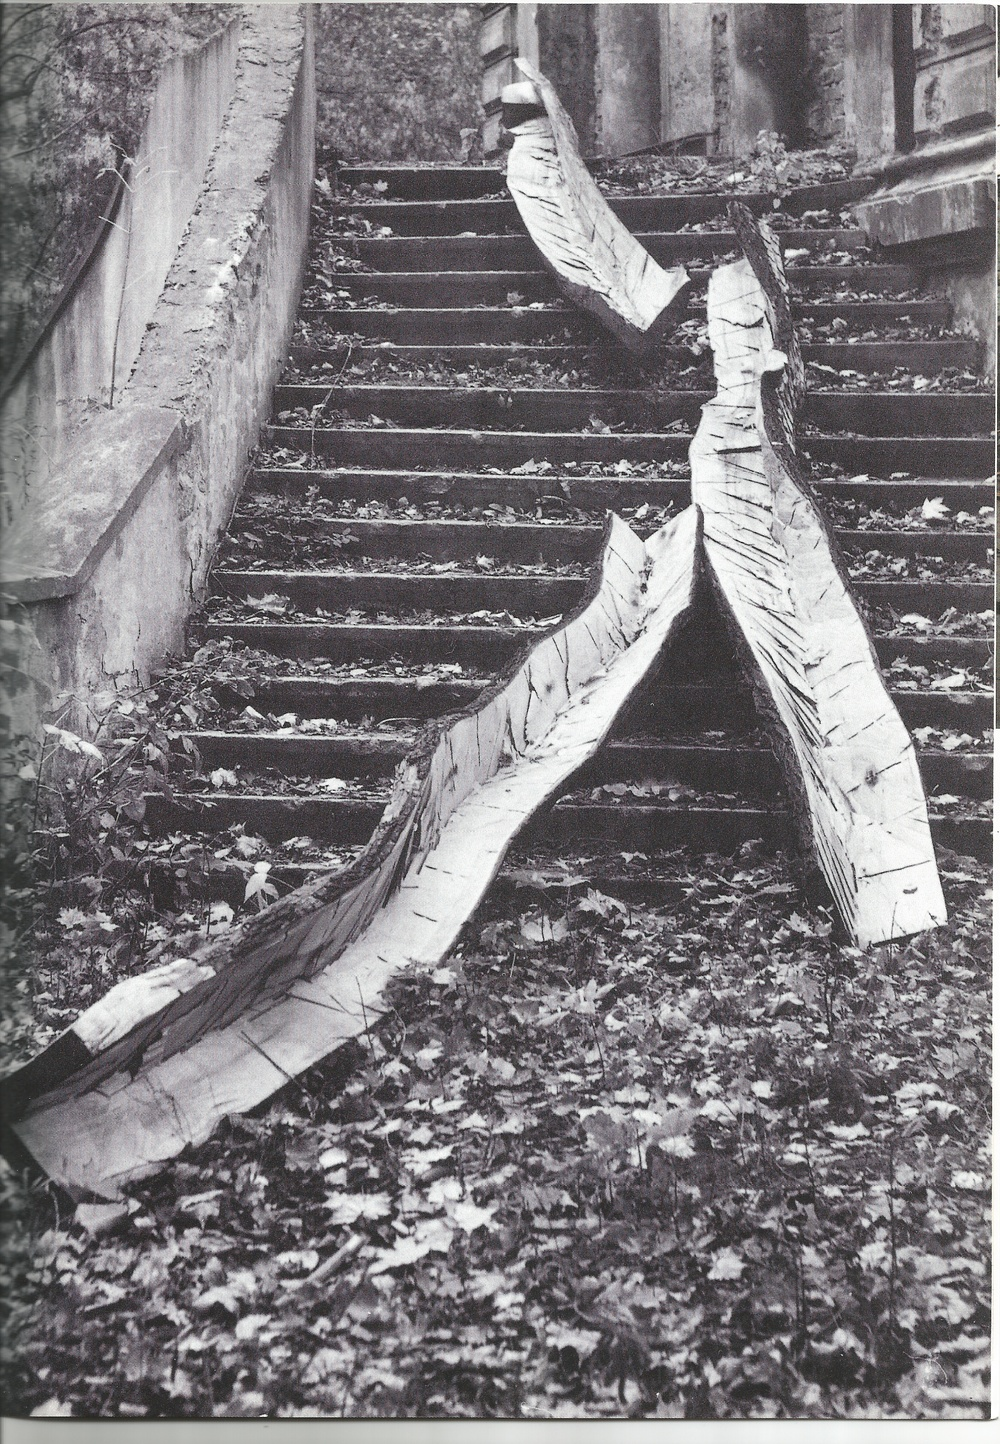 "Maple Cascade, 1993, 14 feet long, 14 feet long, 12 feet long, maple wood. Featured in ""Construction in Process IV – My Home is Your Home"" outside Grohman Palace, Lodz, Poland in 1993. Photograph by Leszek Czolnowski."